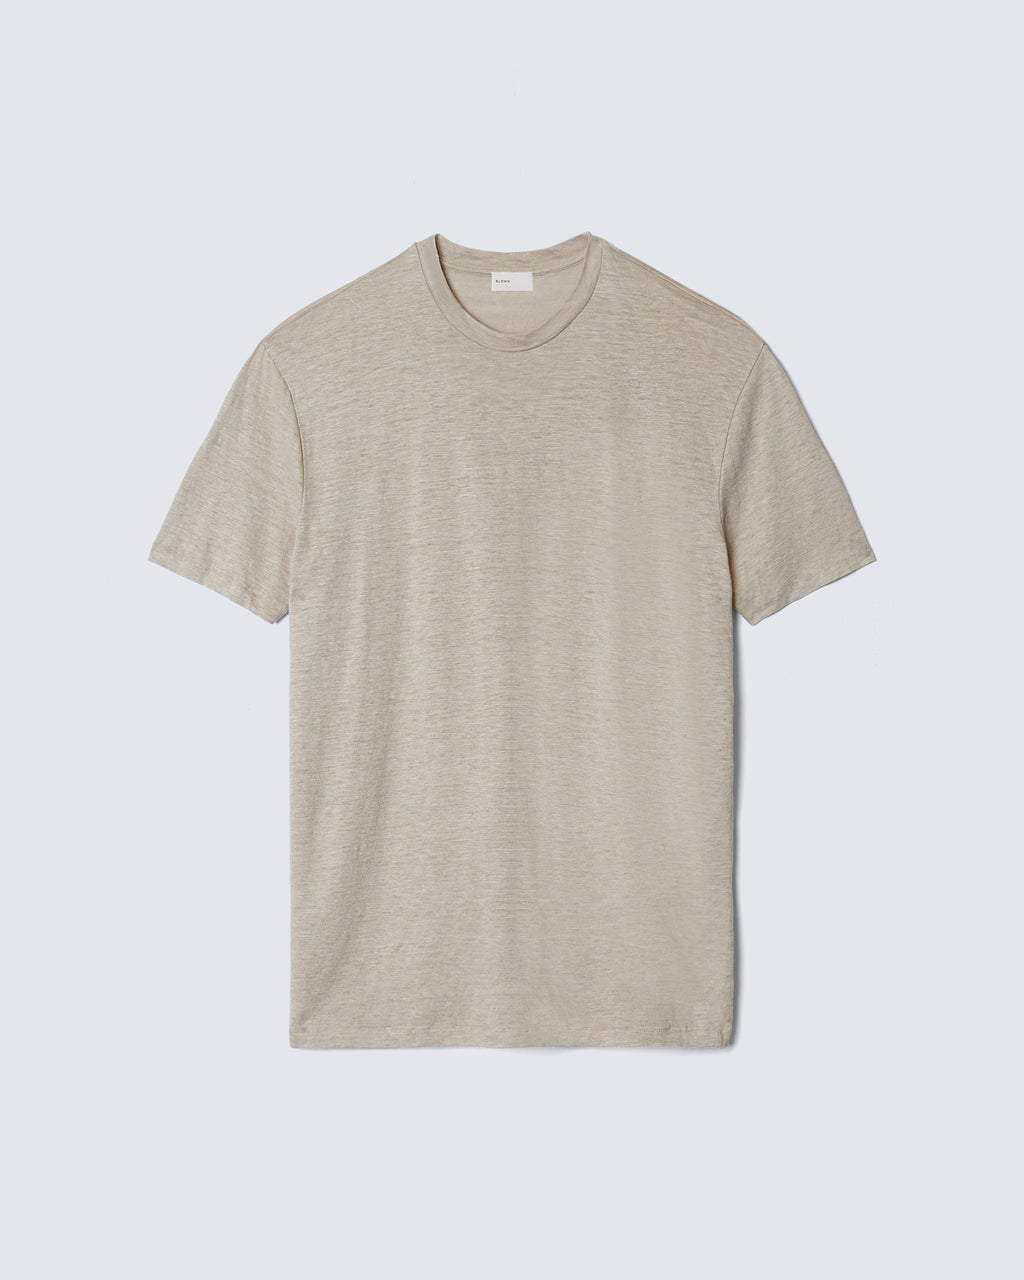 The Nolen Tee in Greige